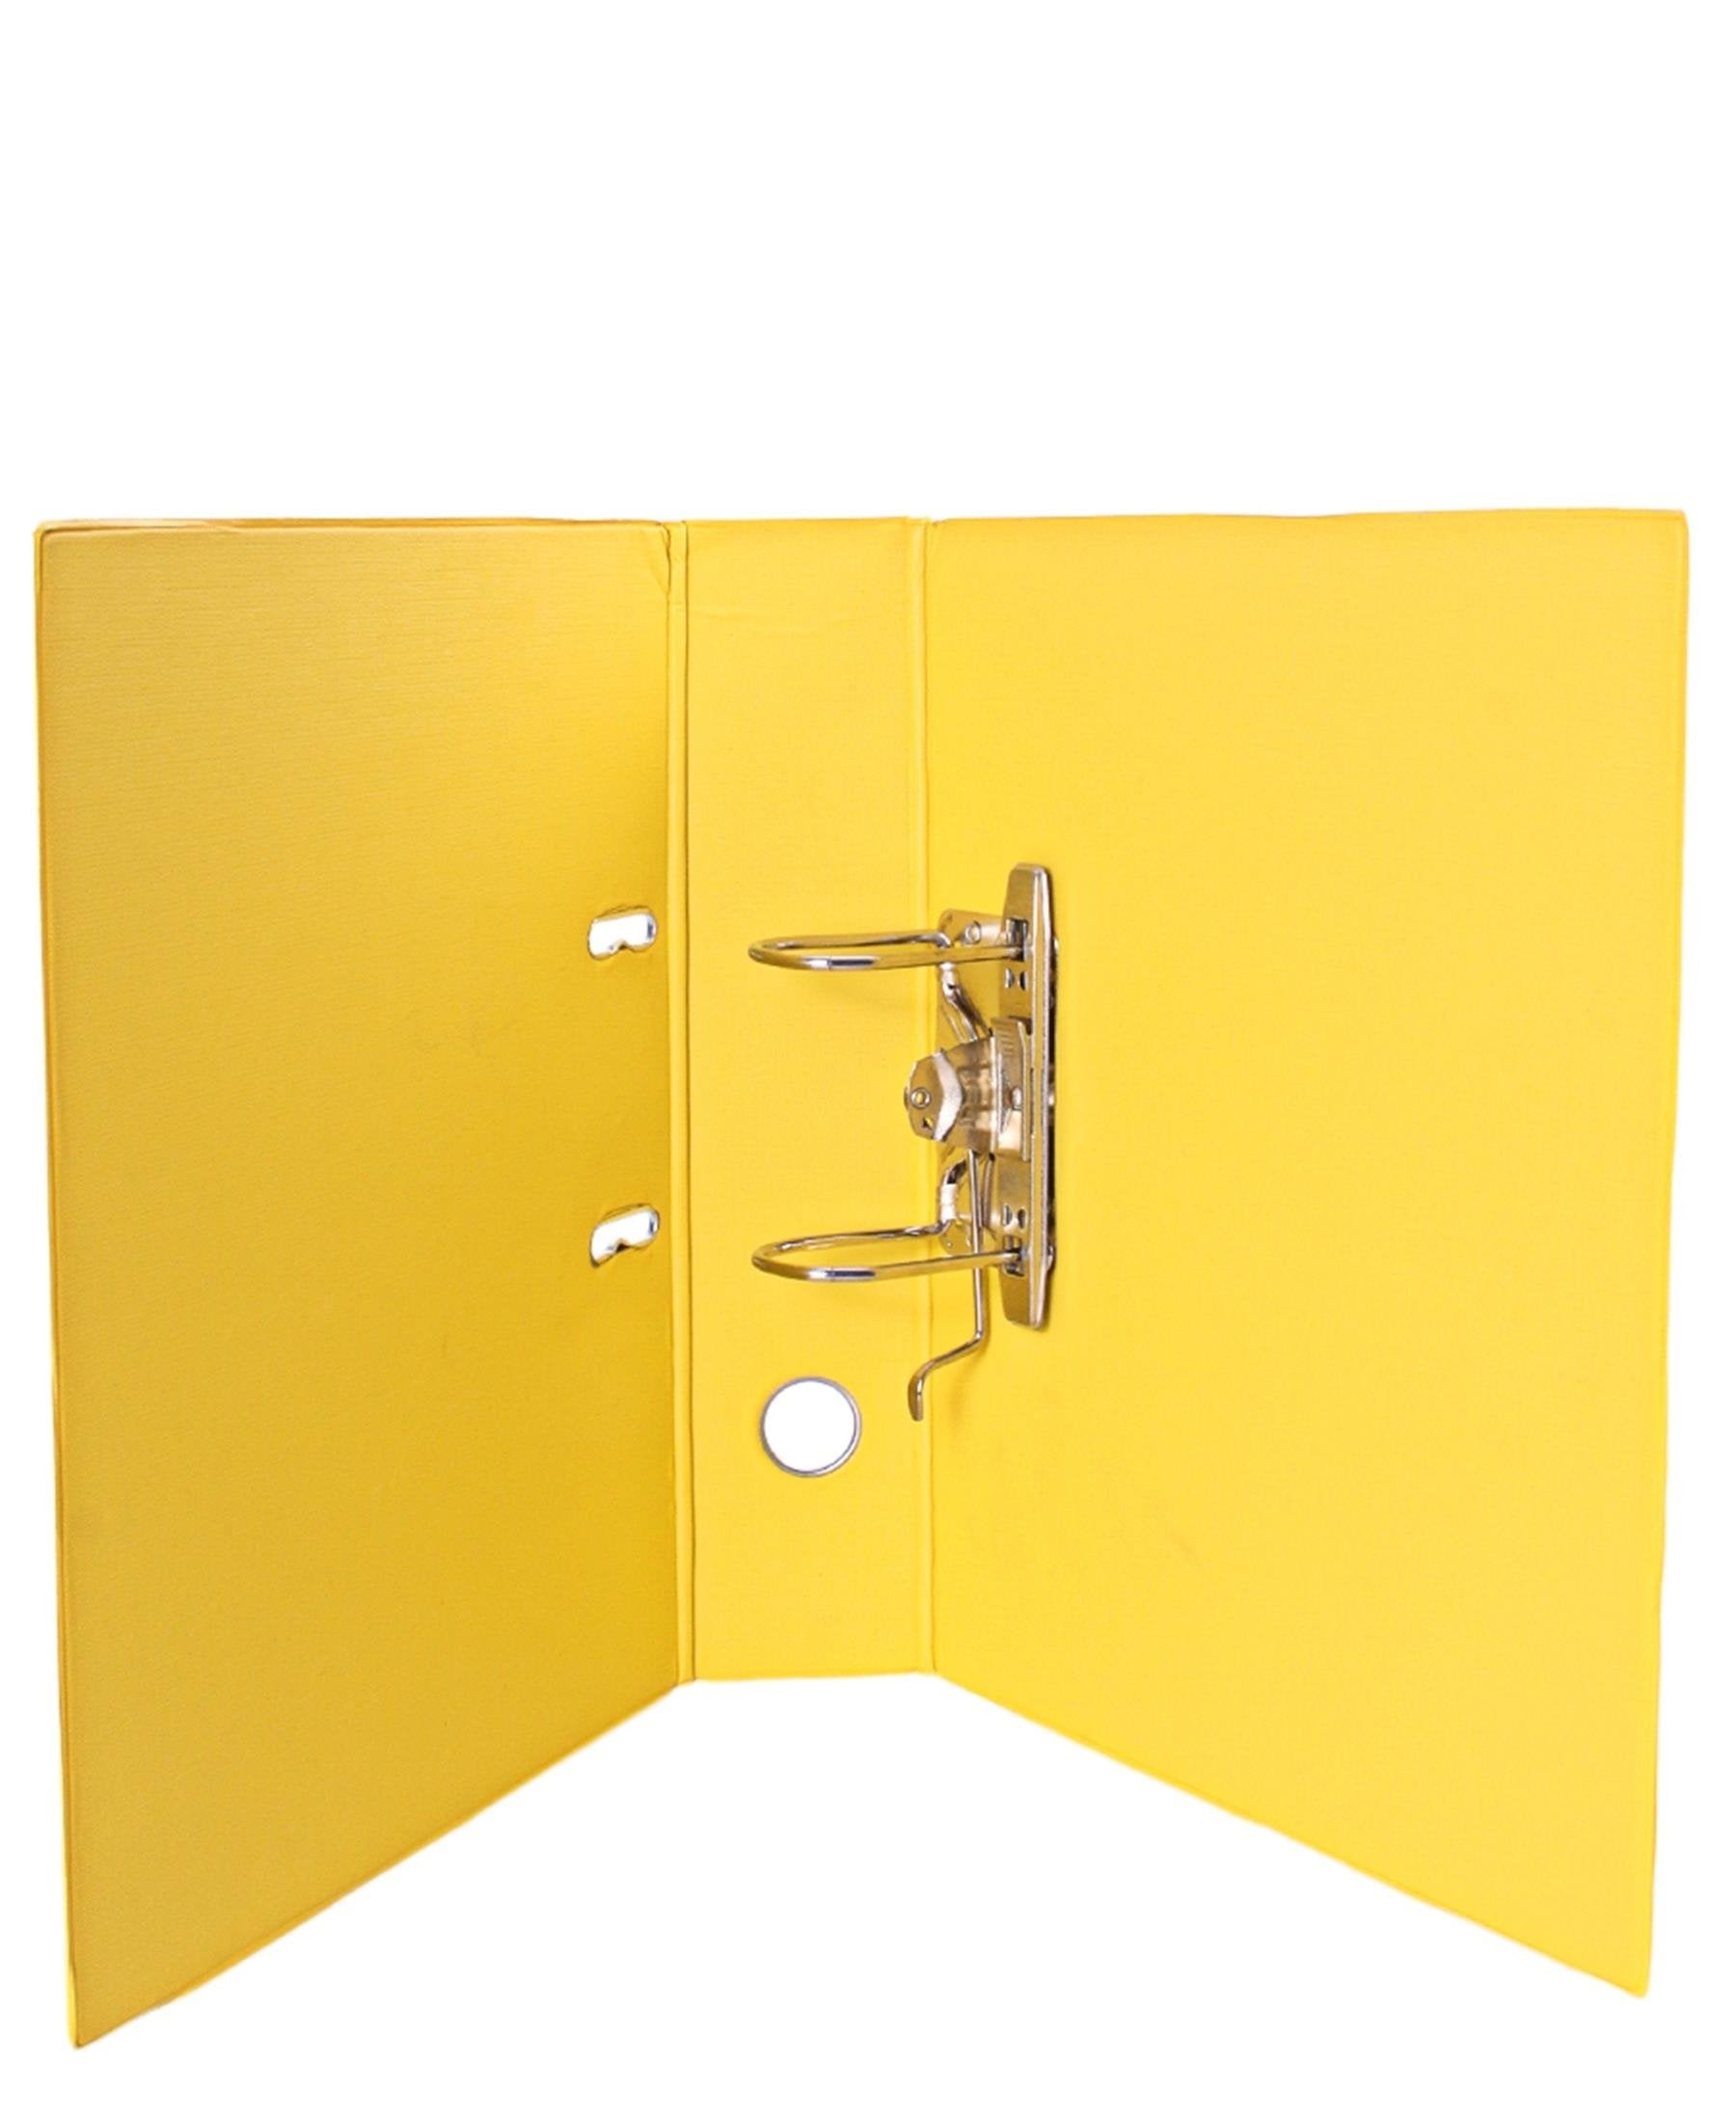 Marlin PVC Lever Arch File - Yellow